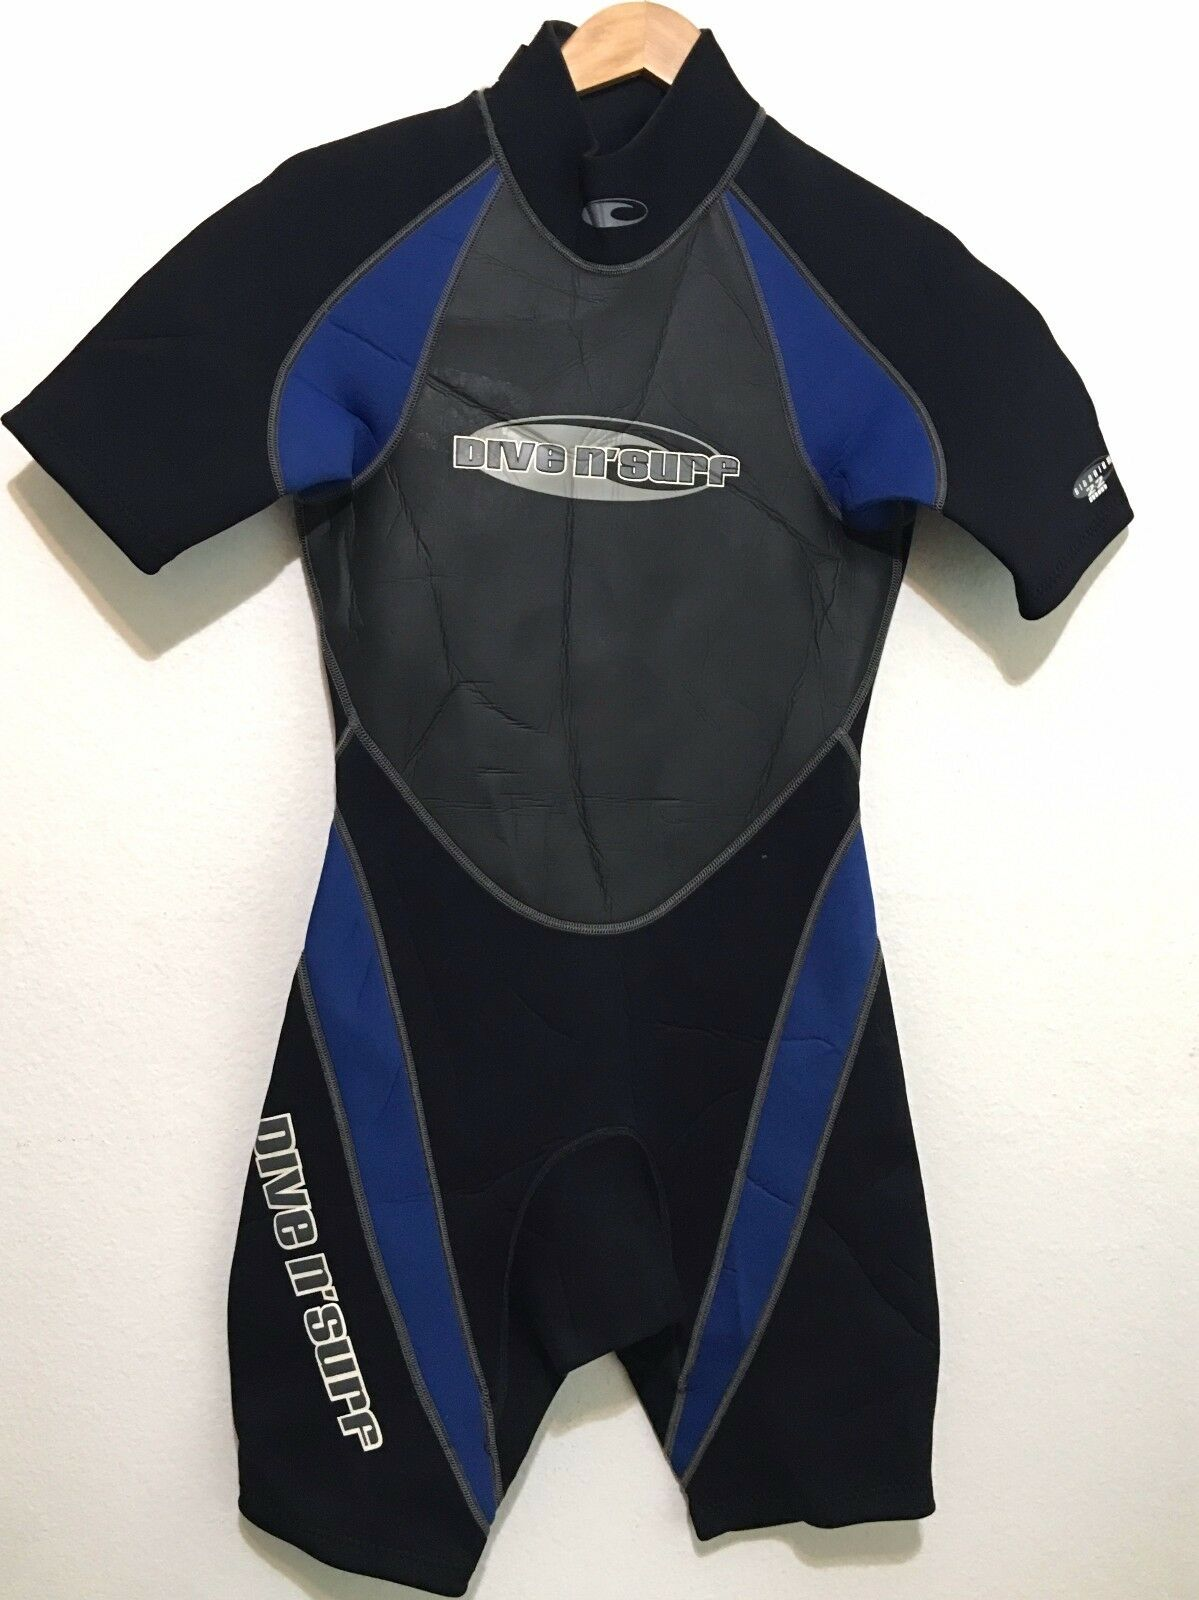 Dive N Surf Mens Spring Shorty  Wetsuit 2 2 Size Medium M  up to 50% off